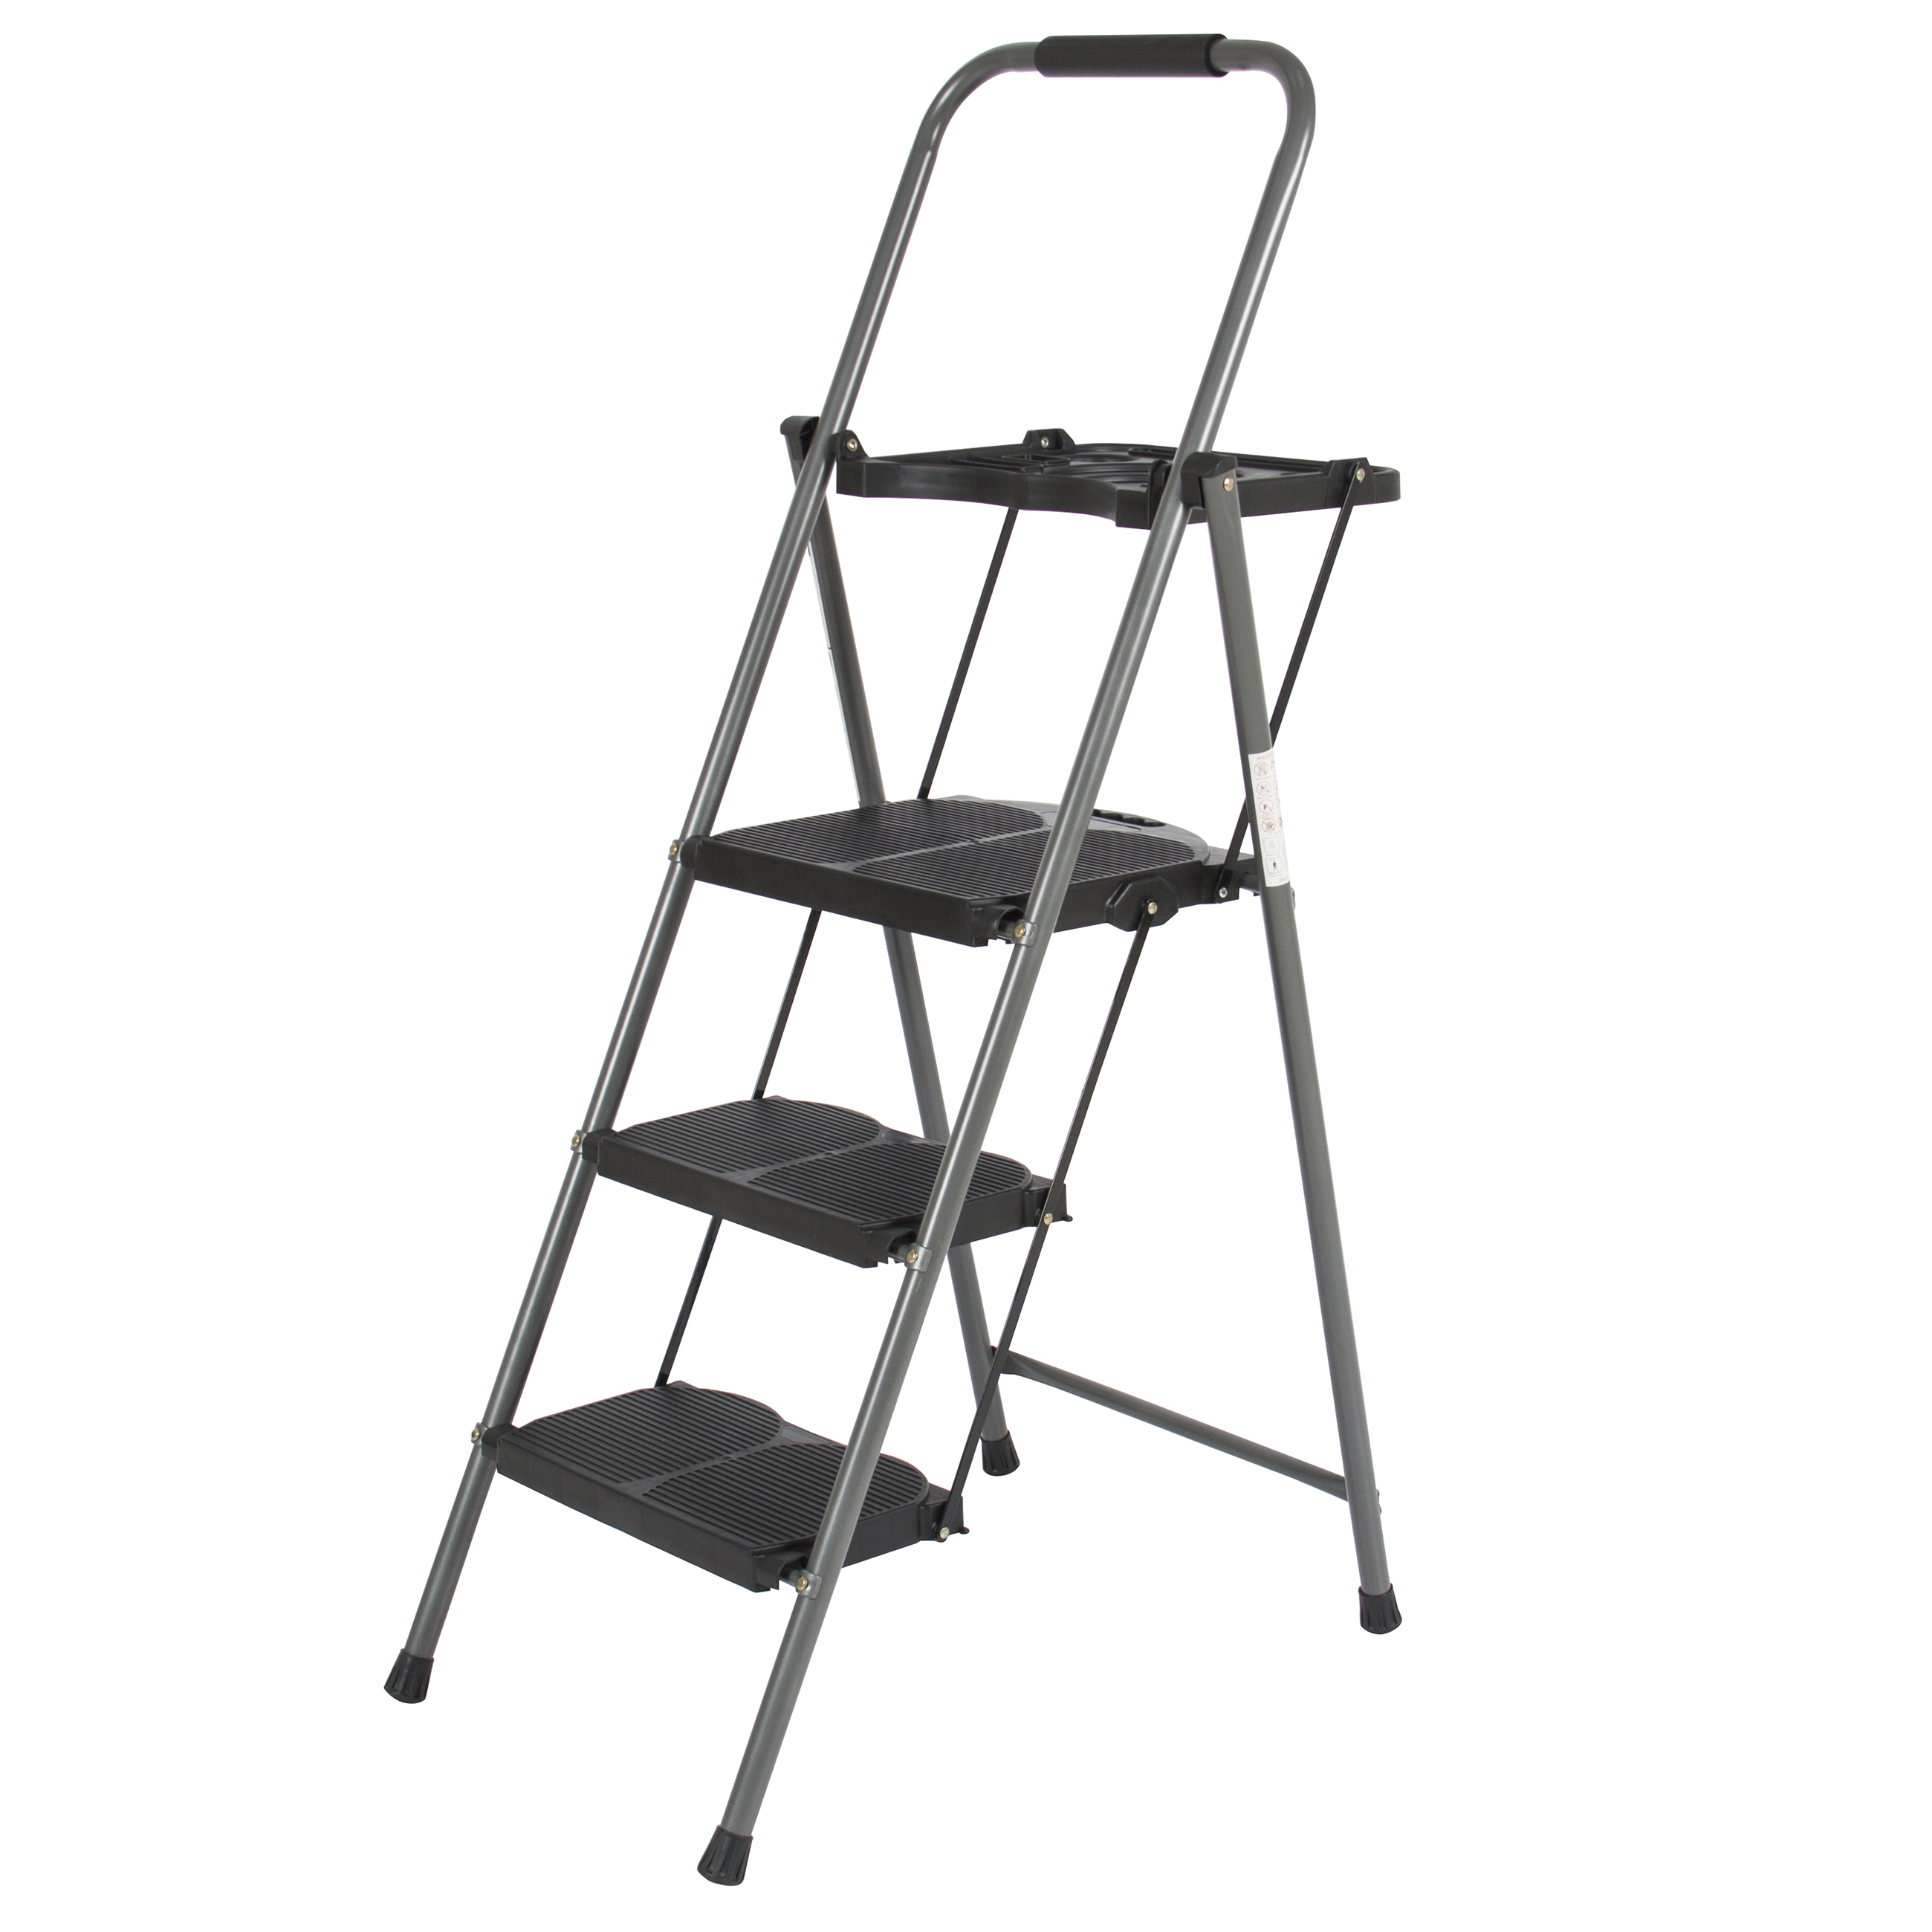 3 Step Ladder Platform Lightweight Folding Stool 330 Lbs